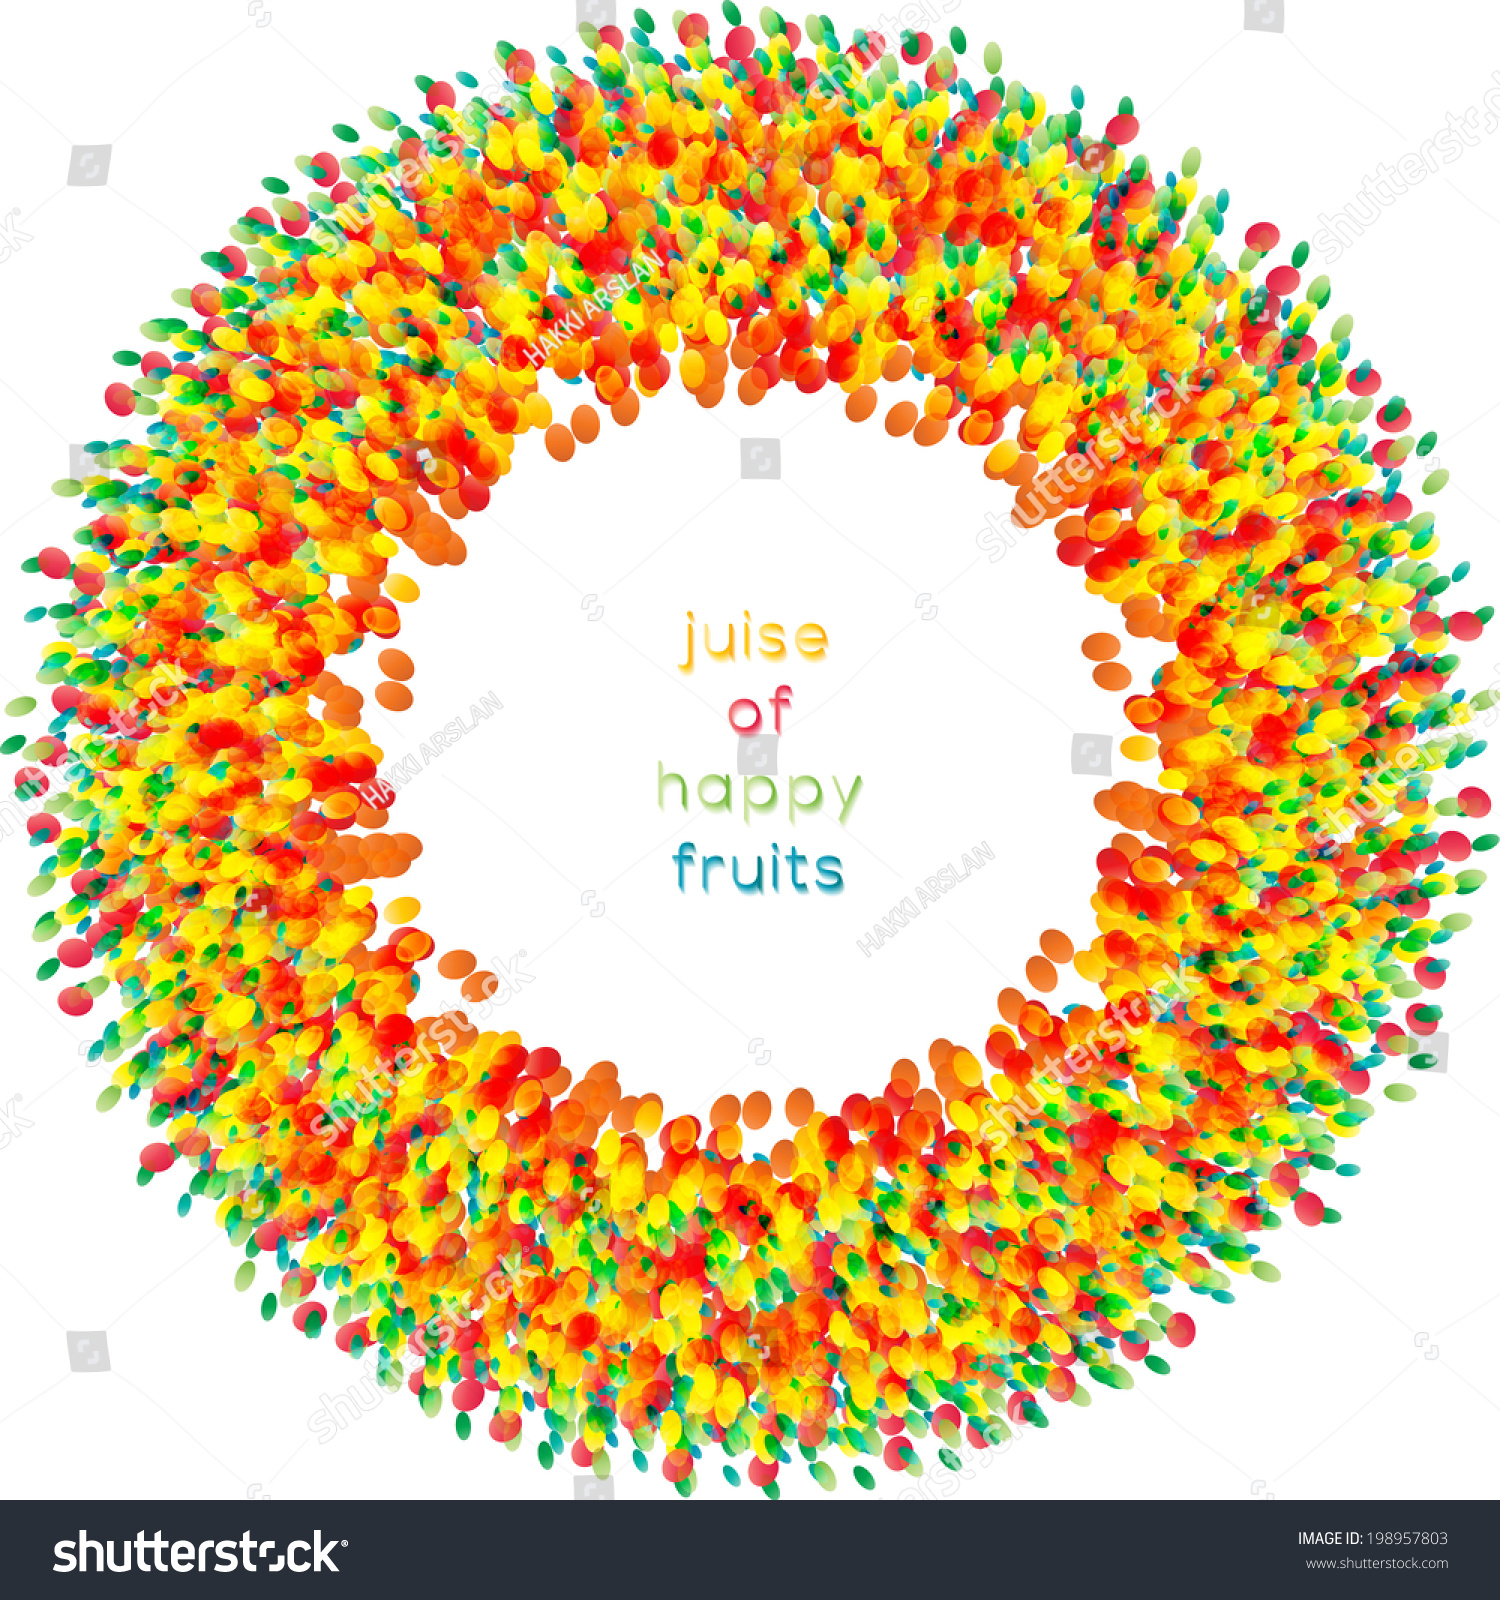 Colorful Fruit Mix Abstract Illustrated Vector Stock Vector